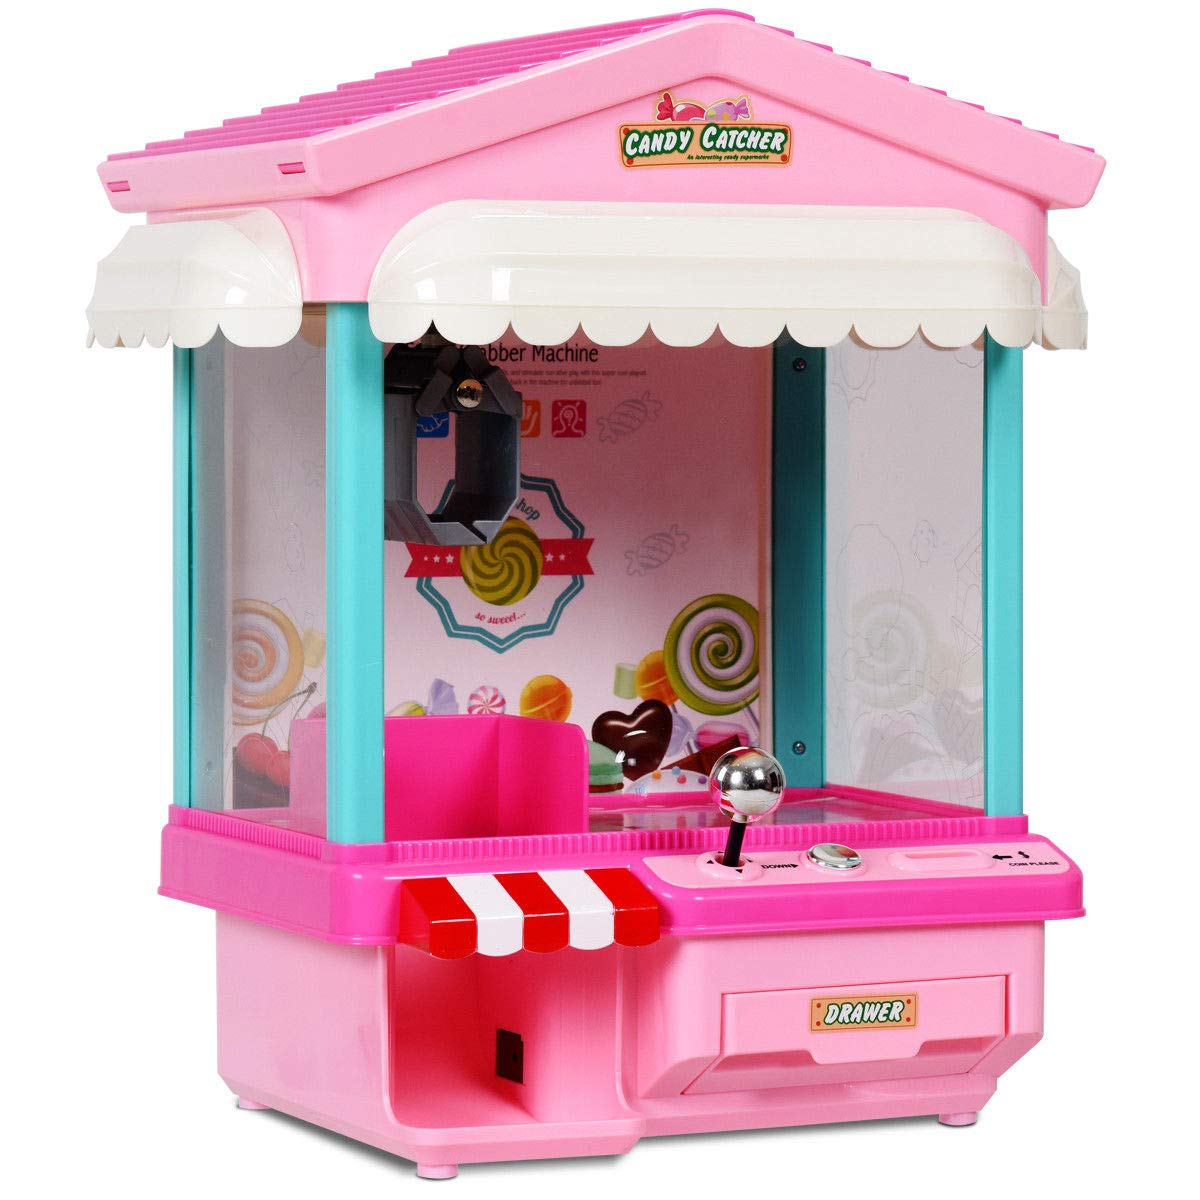 Alek...Shop Carnival Game Kids Home Arcade Electronic Claw Grabber Crane Machine Features Exciting Toy w/ Lights & Music & Coins, Pink